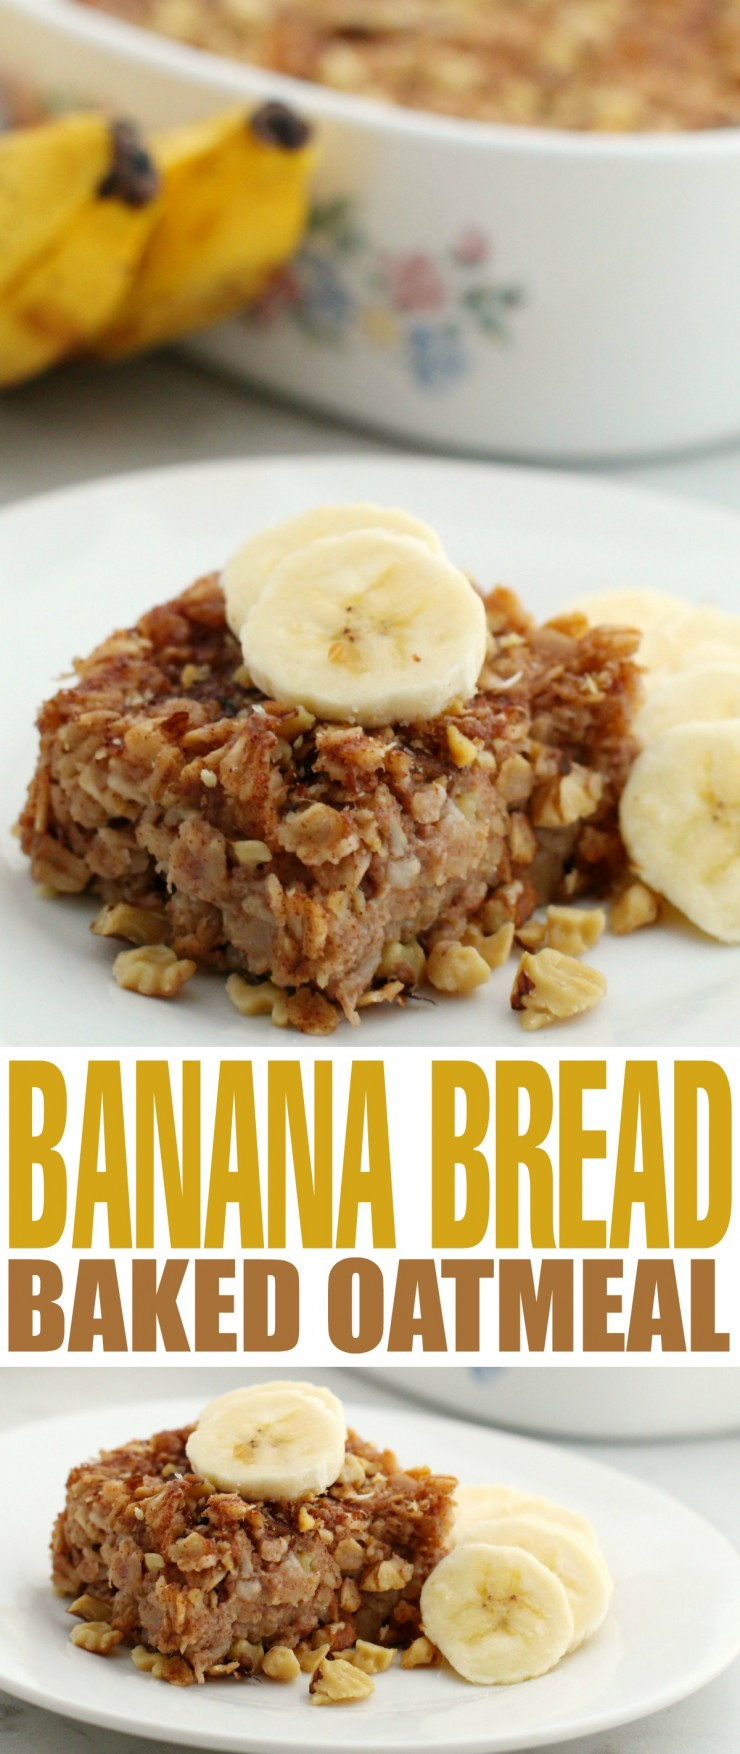 Start your morning right with this delicious and comforting Banana Bread Baked Oatmeal. It's an easy breakfast recipe that will fill you up in the most satisfying way!